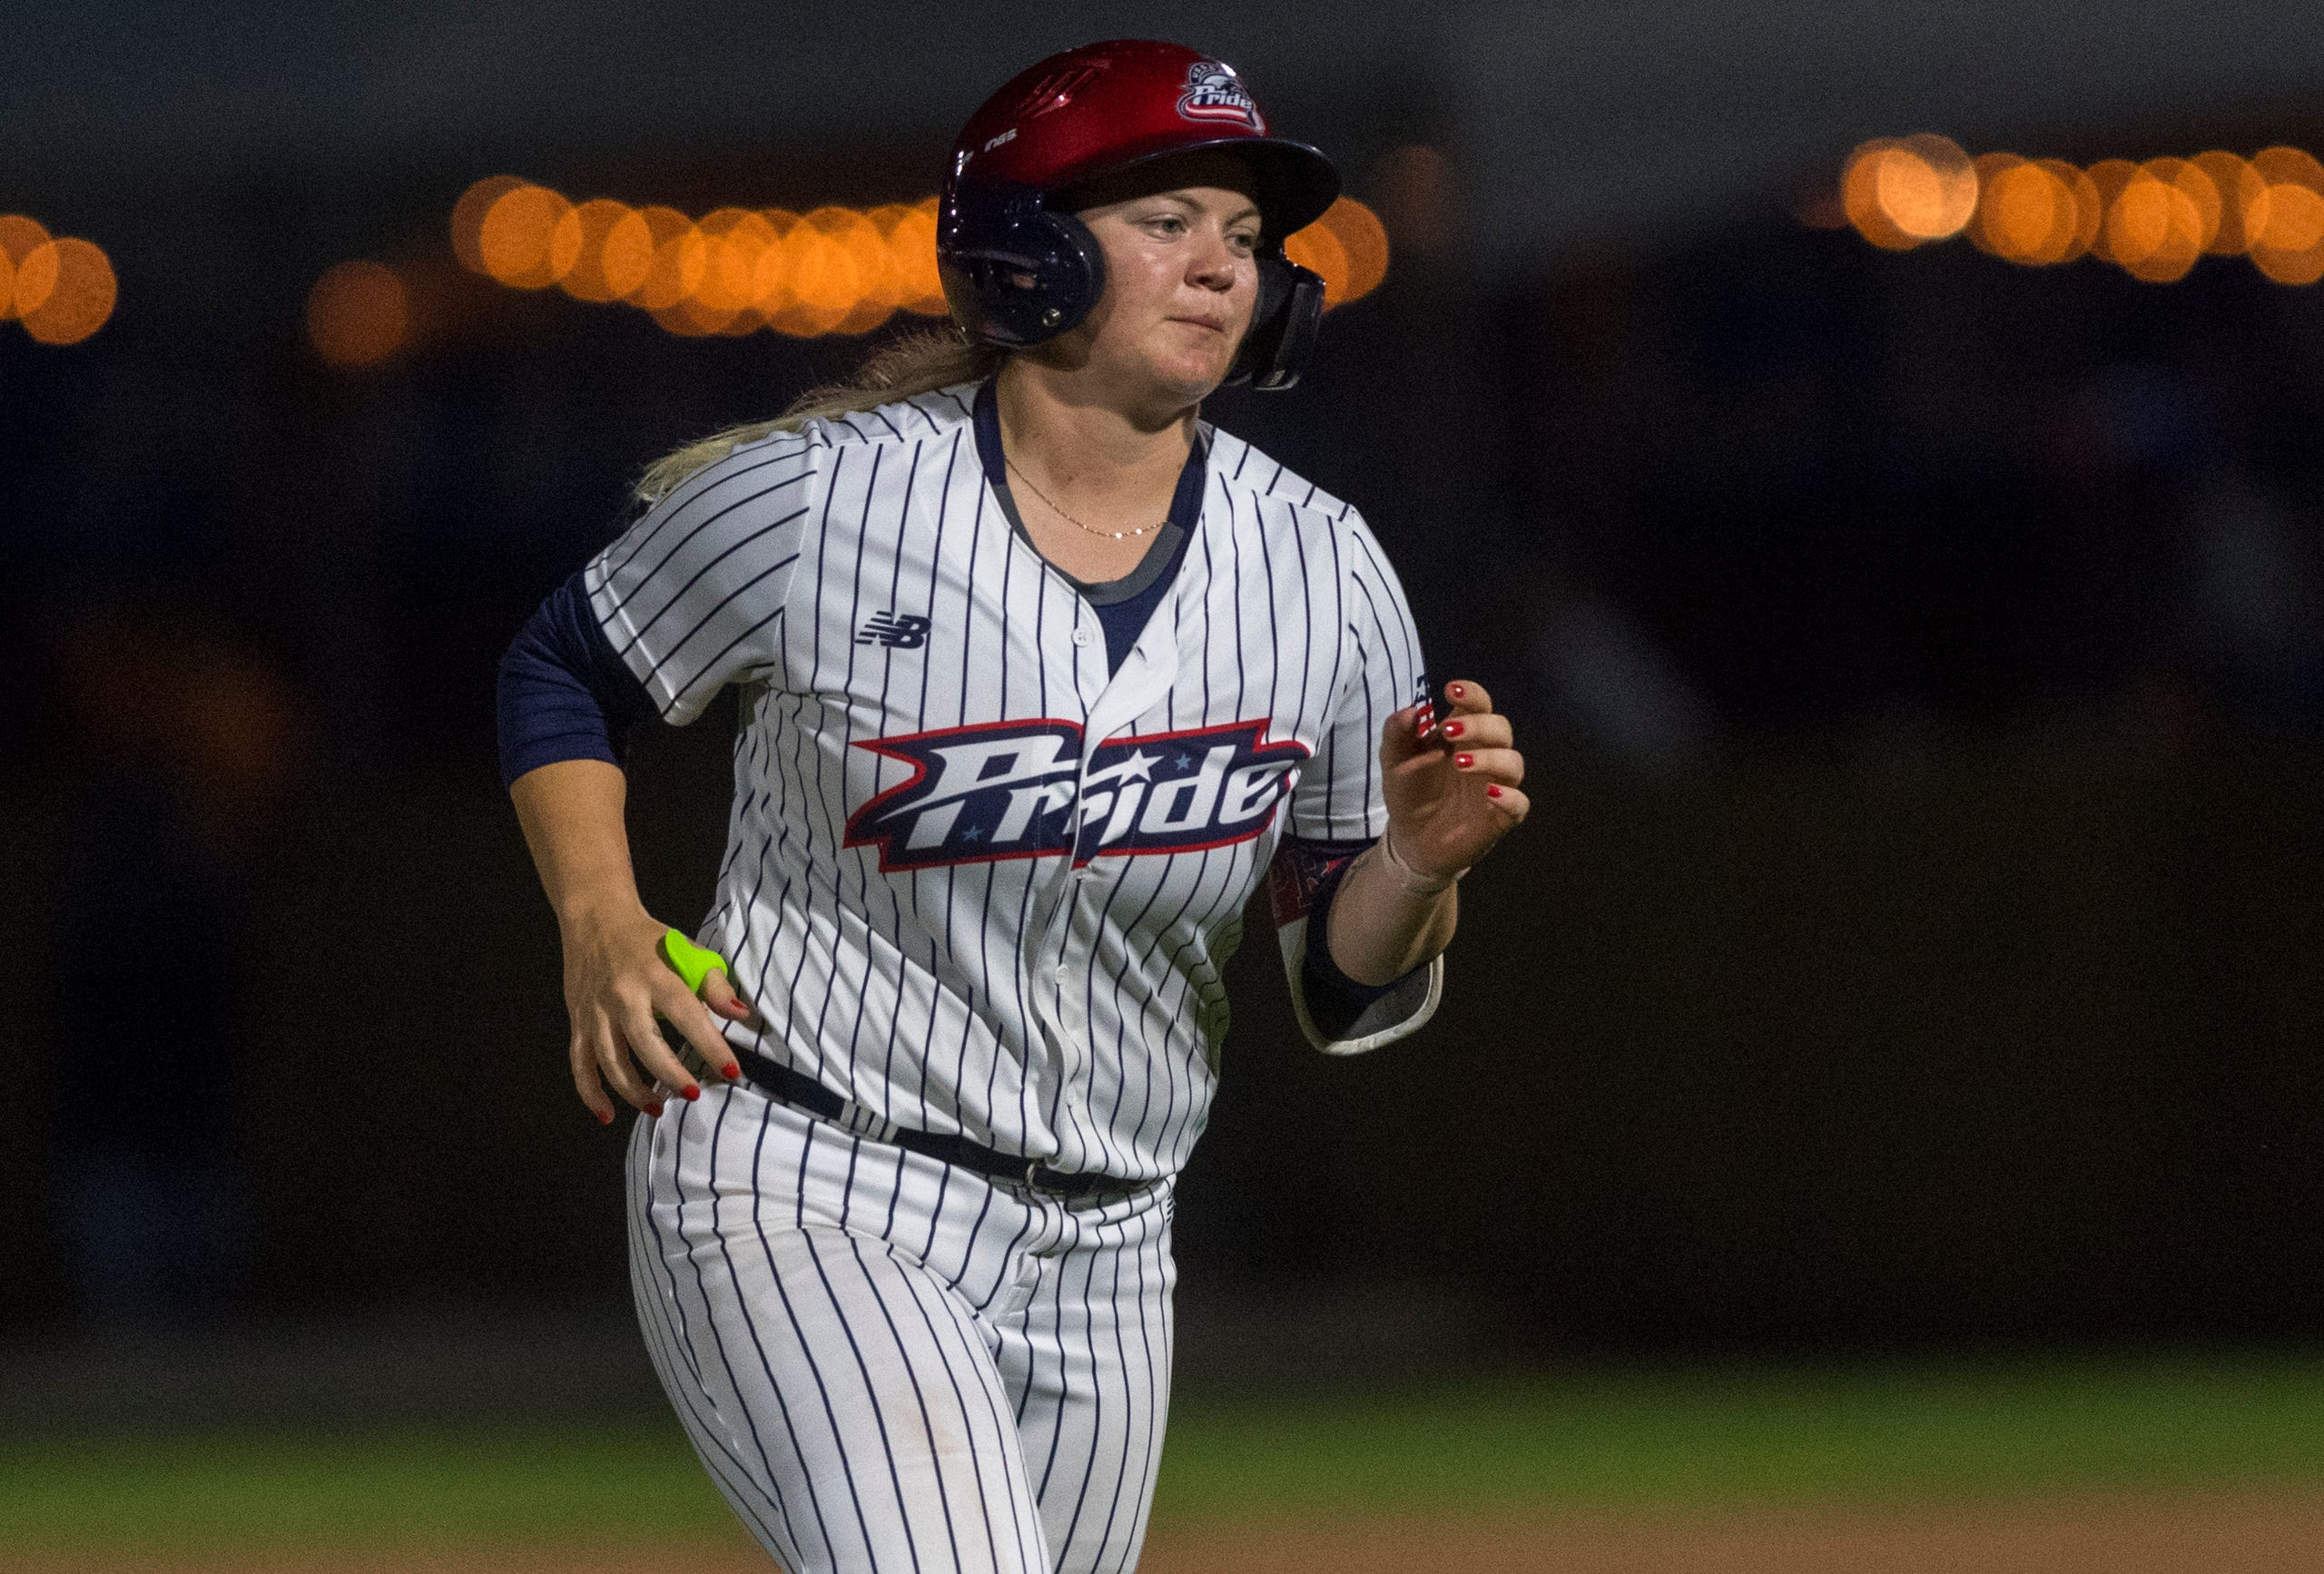 USSSA Pride's Jessie Warren (30) rounds third after hitting a home run as the USSSA Pride takes on Team Florida in an exhibition game at Bosse Field in Evansville, Ind., Wednesday evening, July 14, 2021.